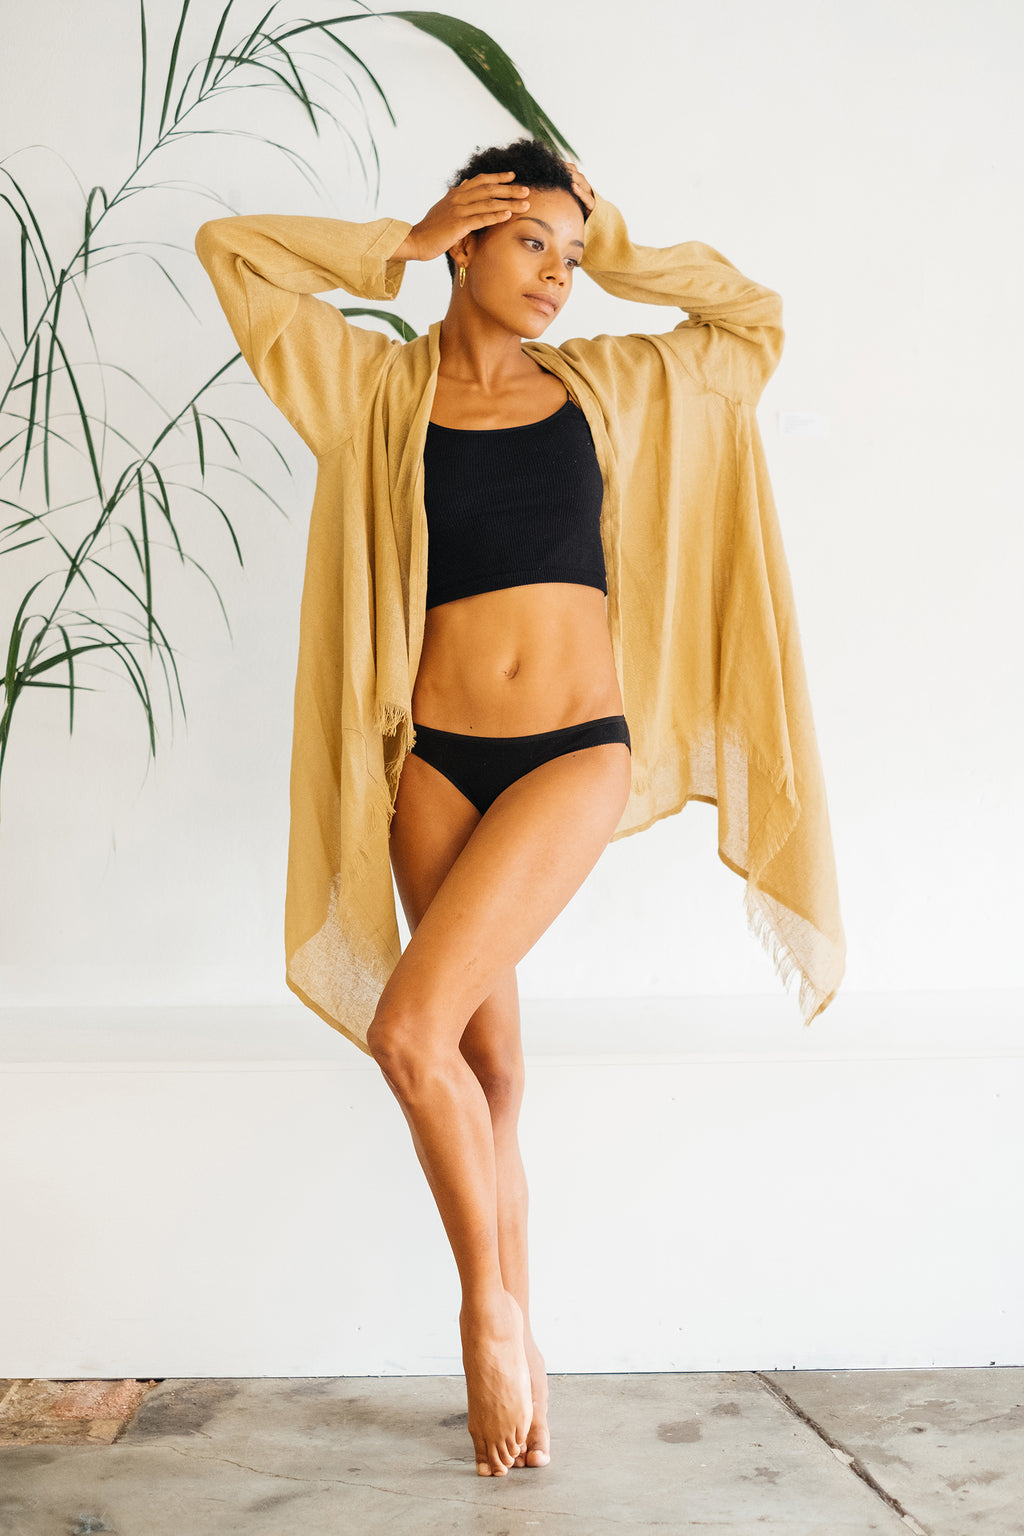 The Silk co. | Ocean Kimono | Sustainable Raw Silk Clothing - The Silk Co Byron Bay